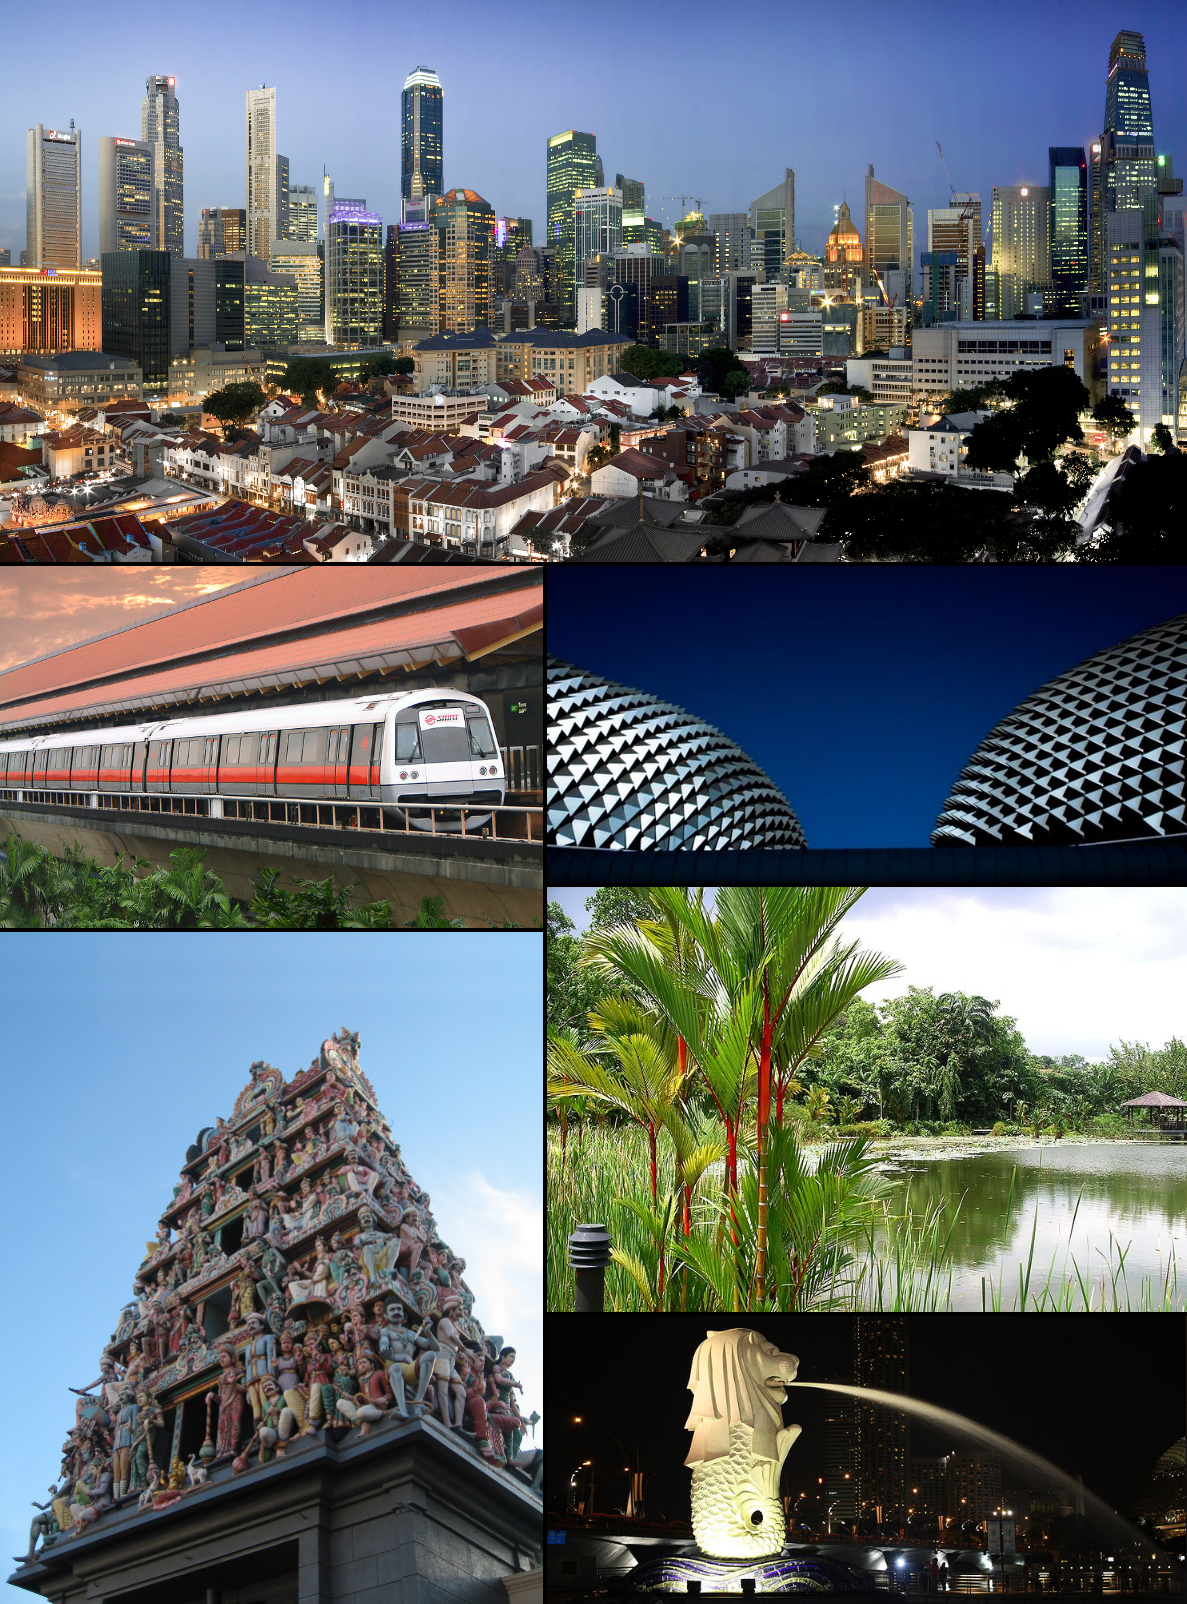 https://i0.wp.com/upload.wikimedia.org/wikipedia/commons/3/39/Singapore_montage.png